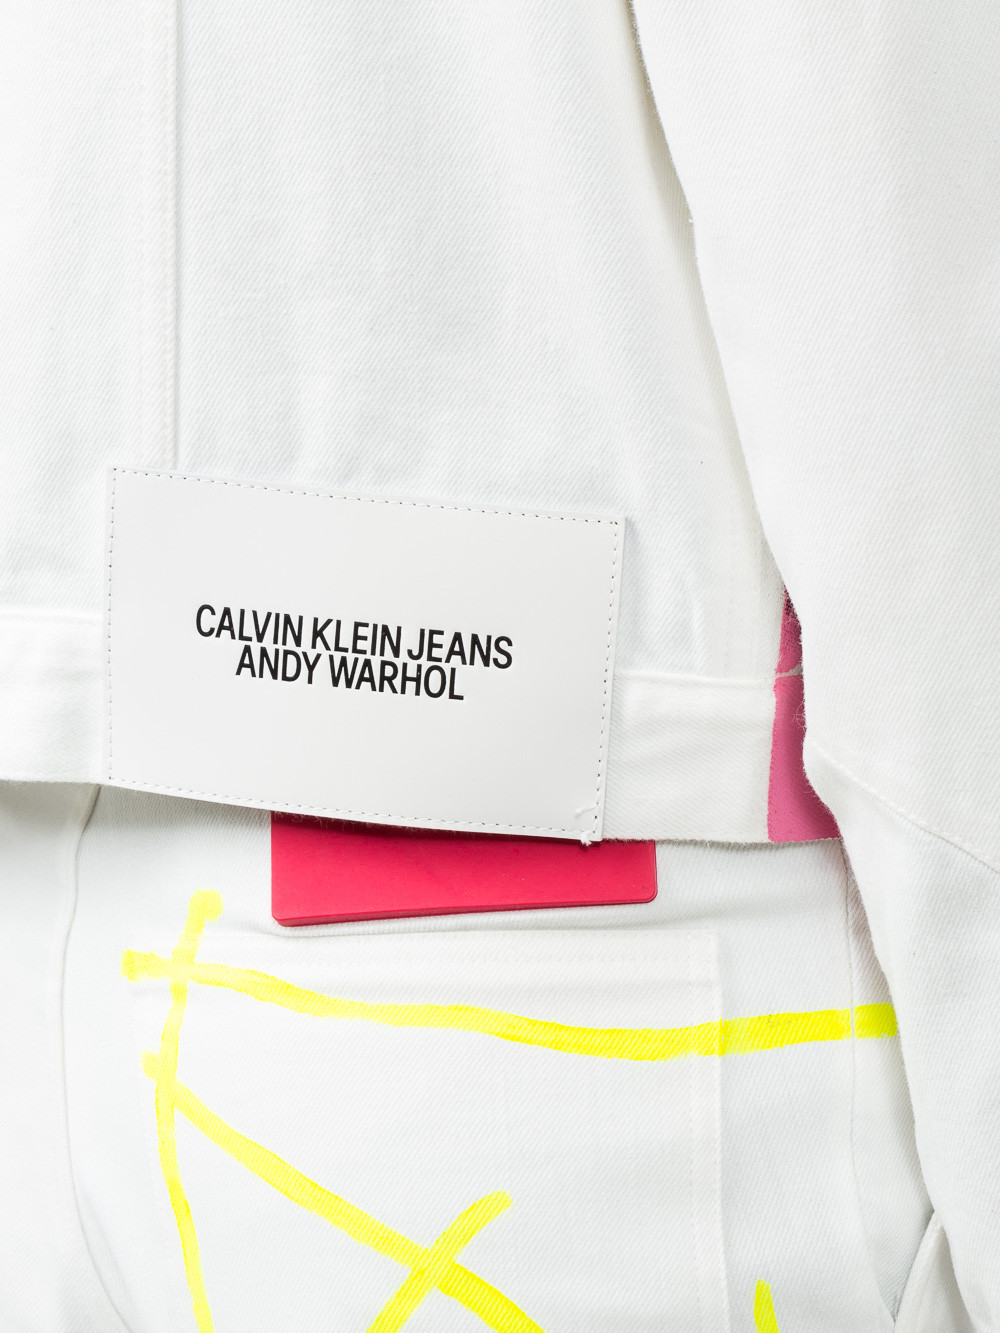 Calvin Klein Jeans x Andy Warhol